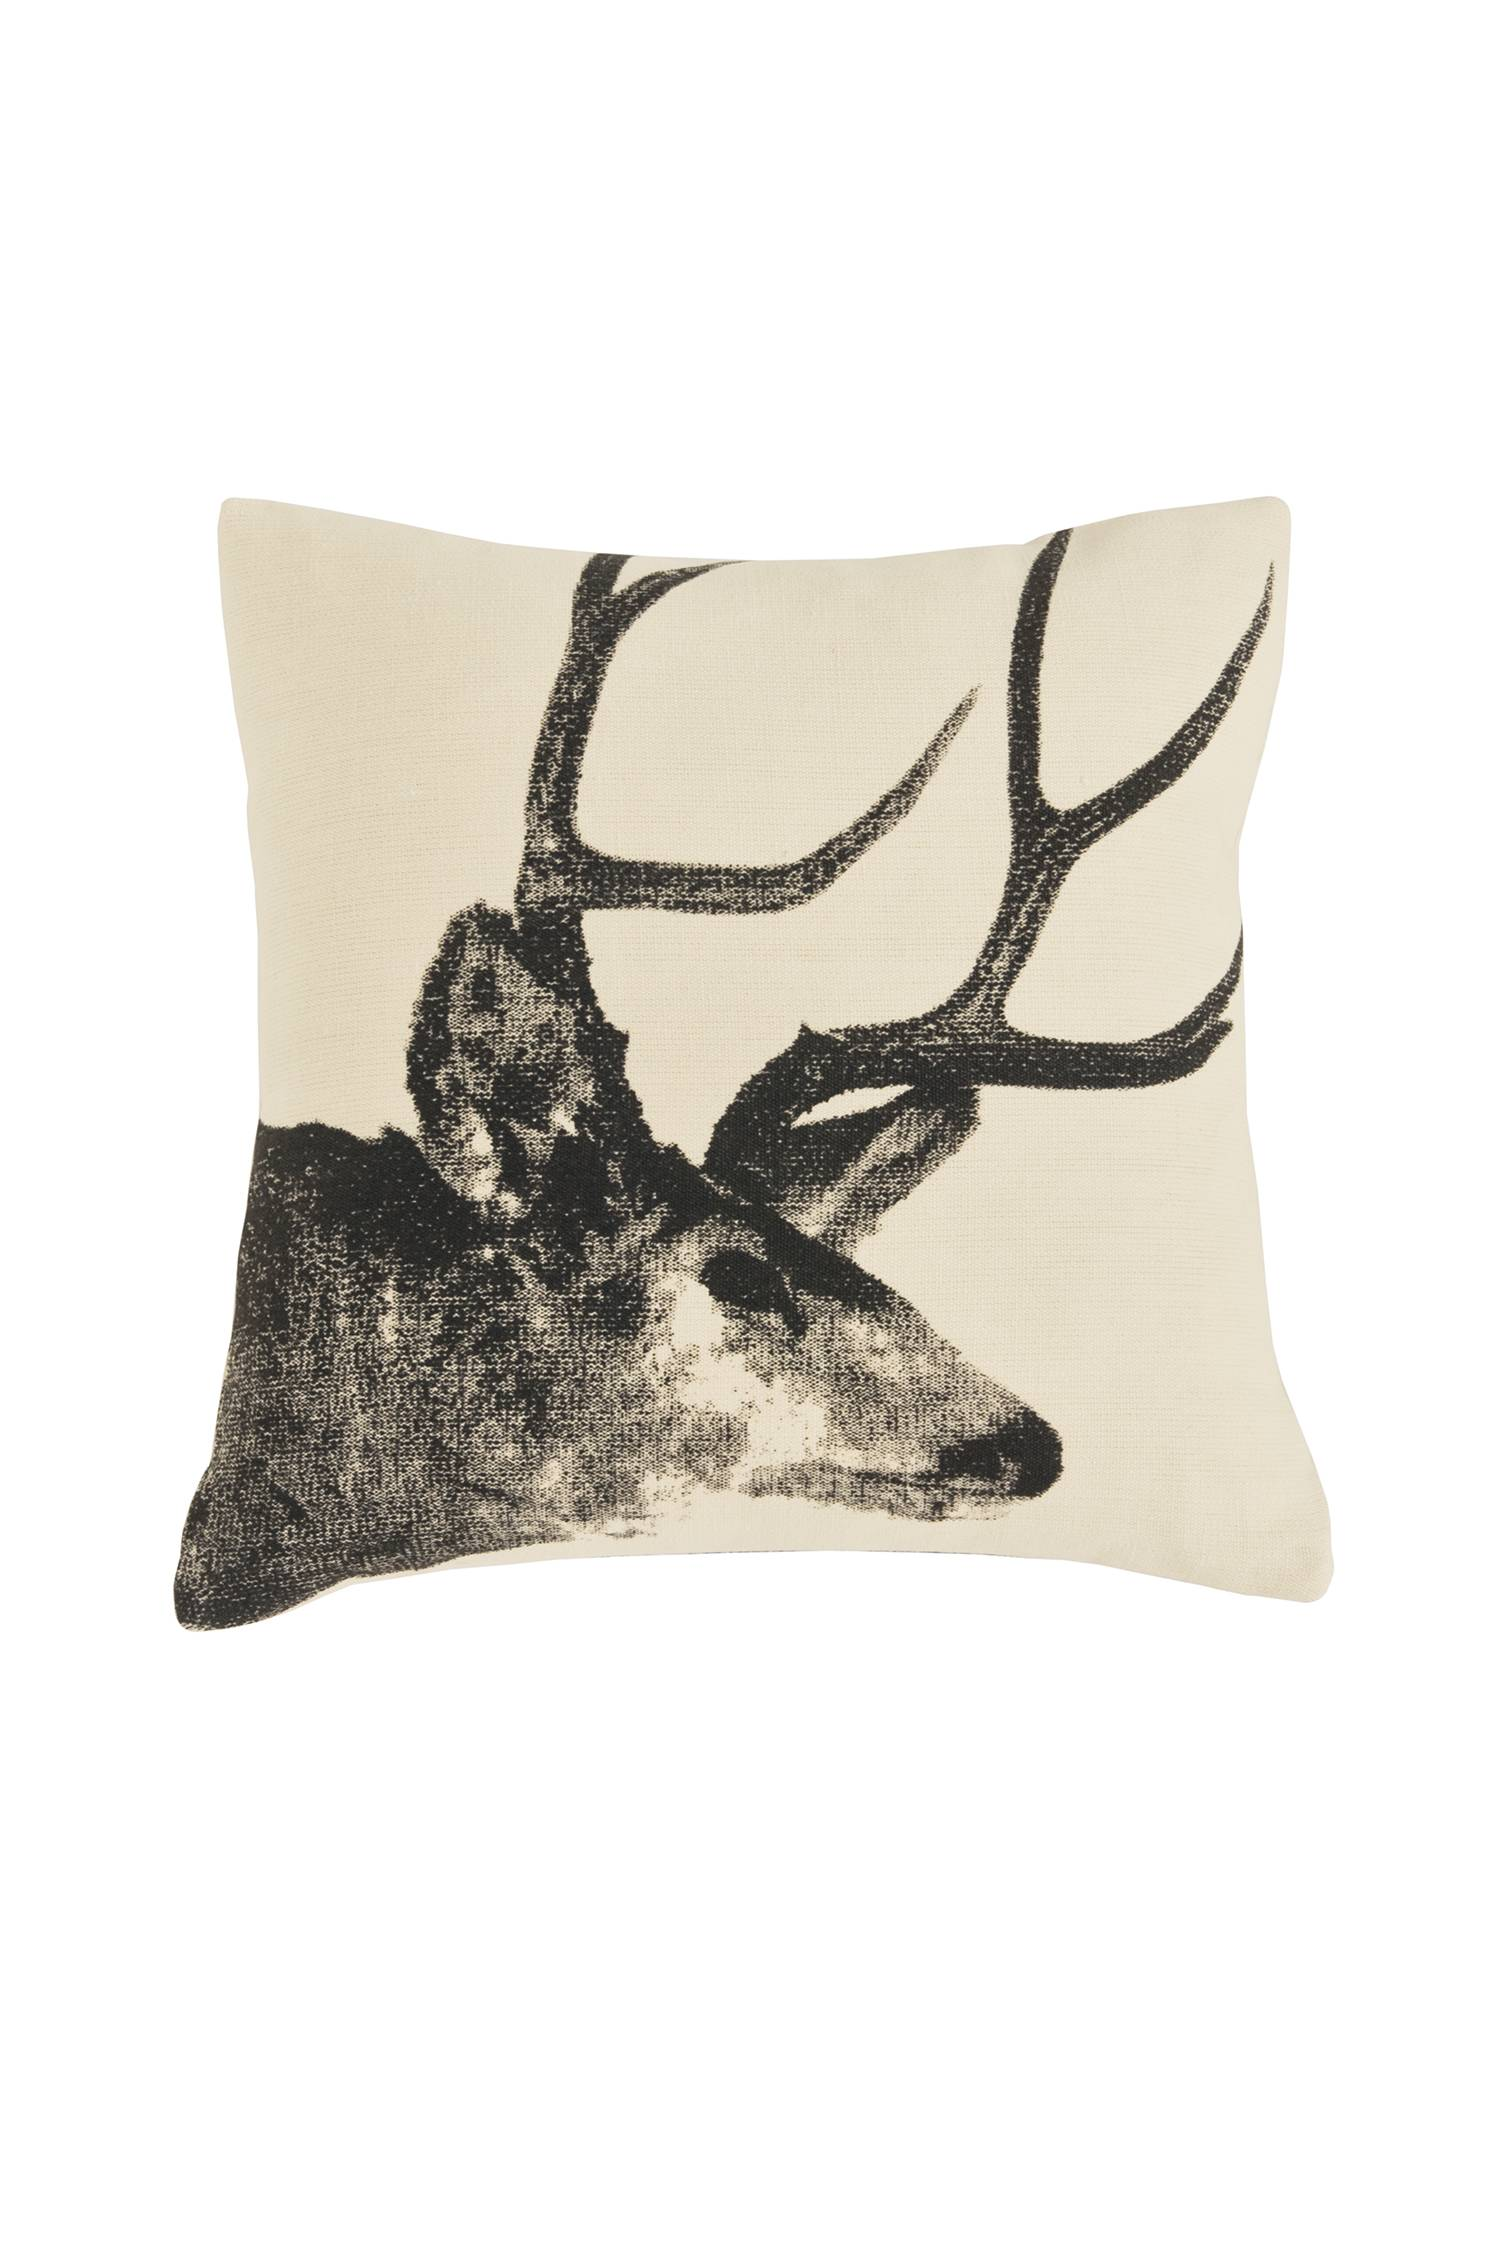 Michelle Pattee's photo of a stag is silk-screened onto hemp fabric, and backed with cotton velvet to make a striking throw pillow from Pendleton-usa.com.